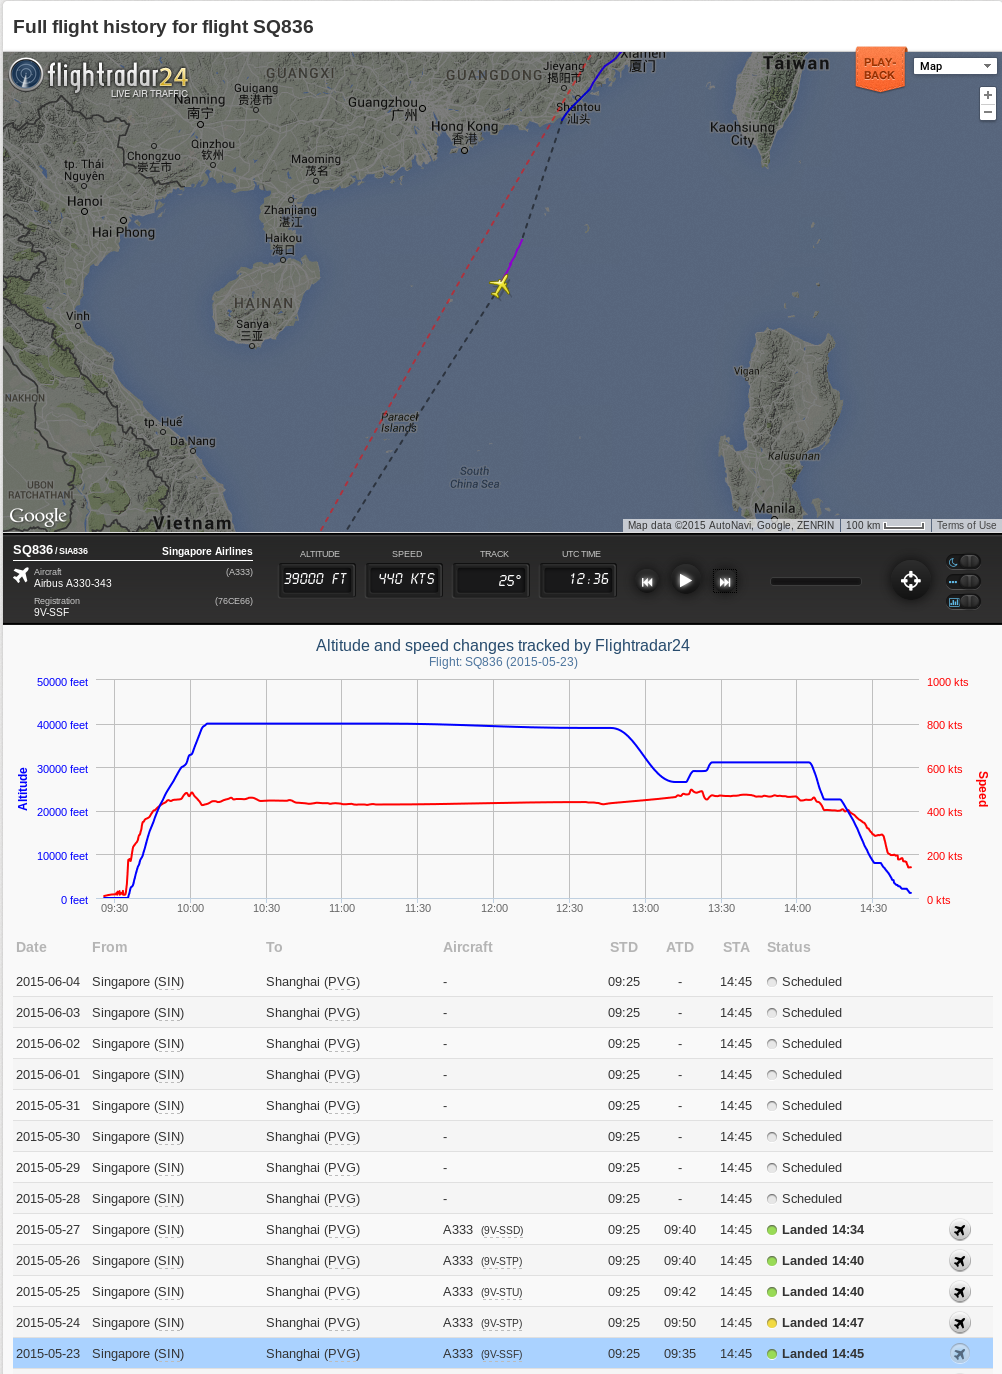 Singapore Airlines Flight SQ836 path, altitude, and airspeed (from flightradar24)